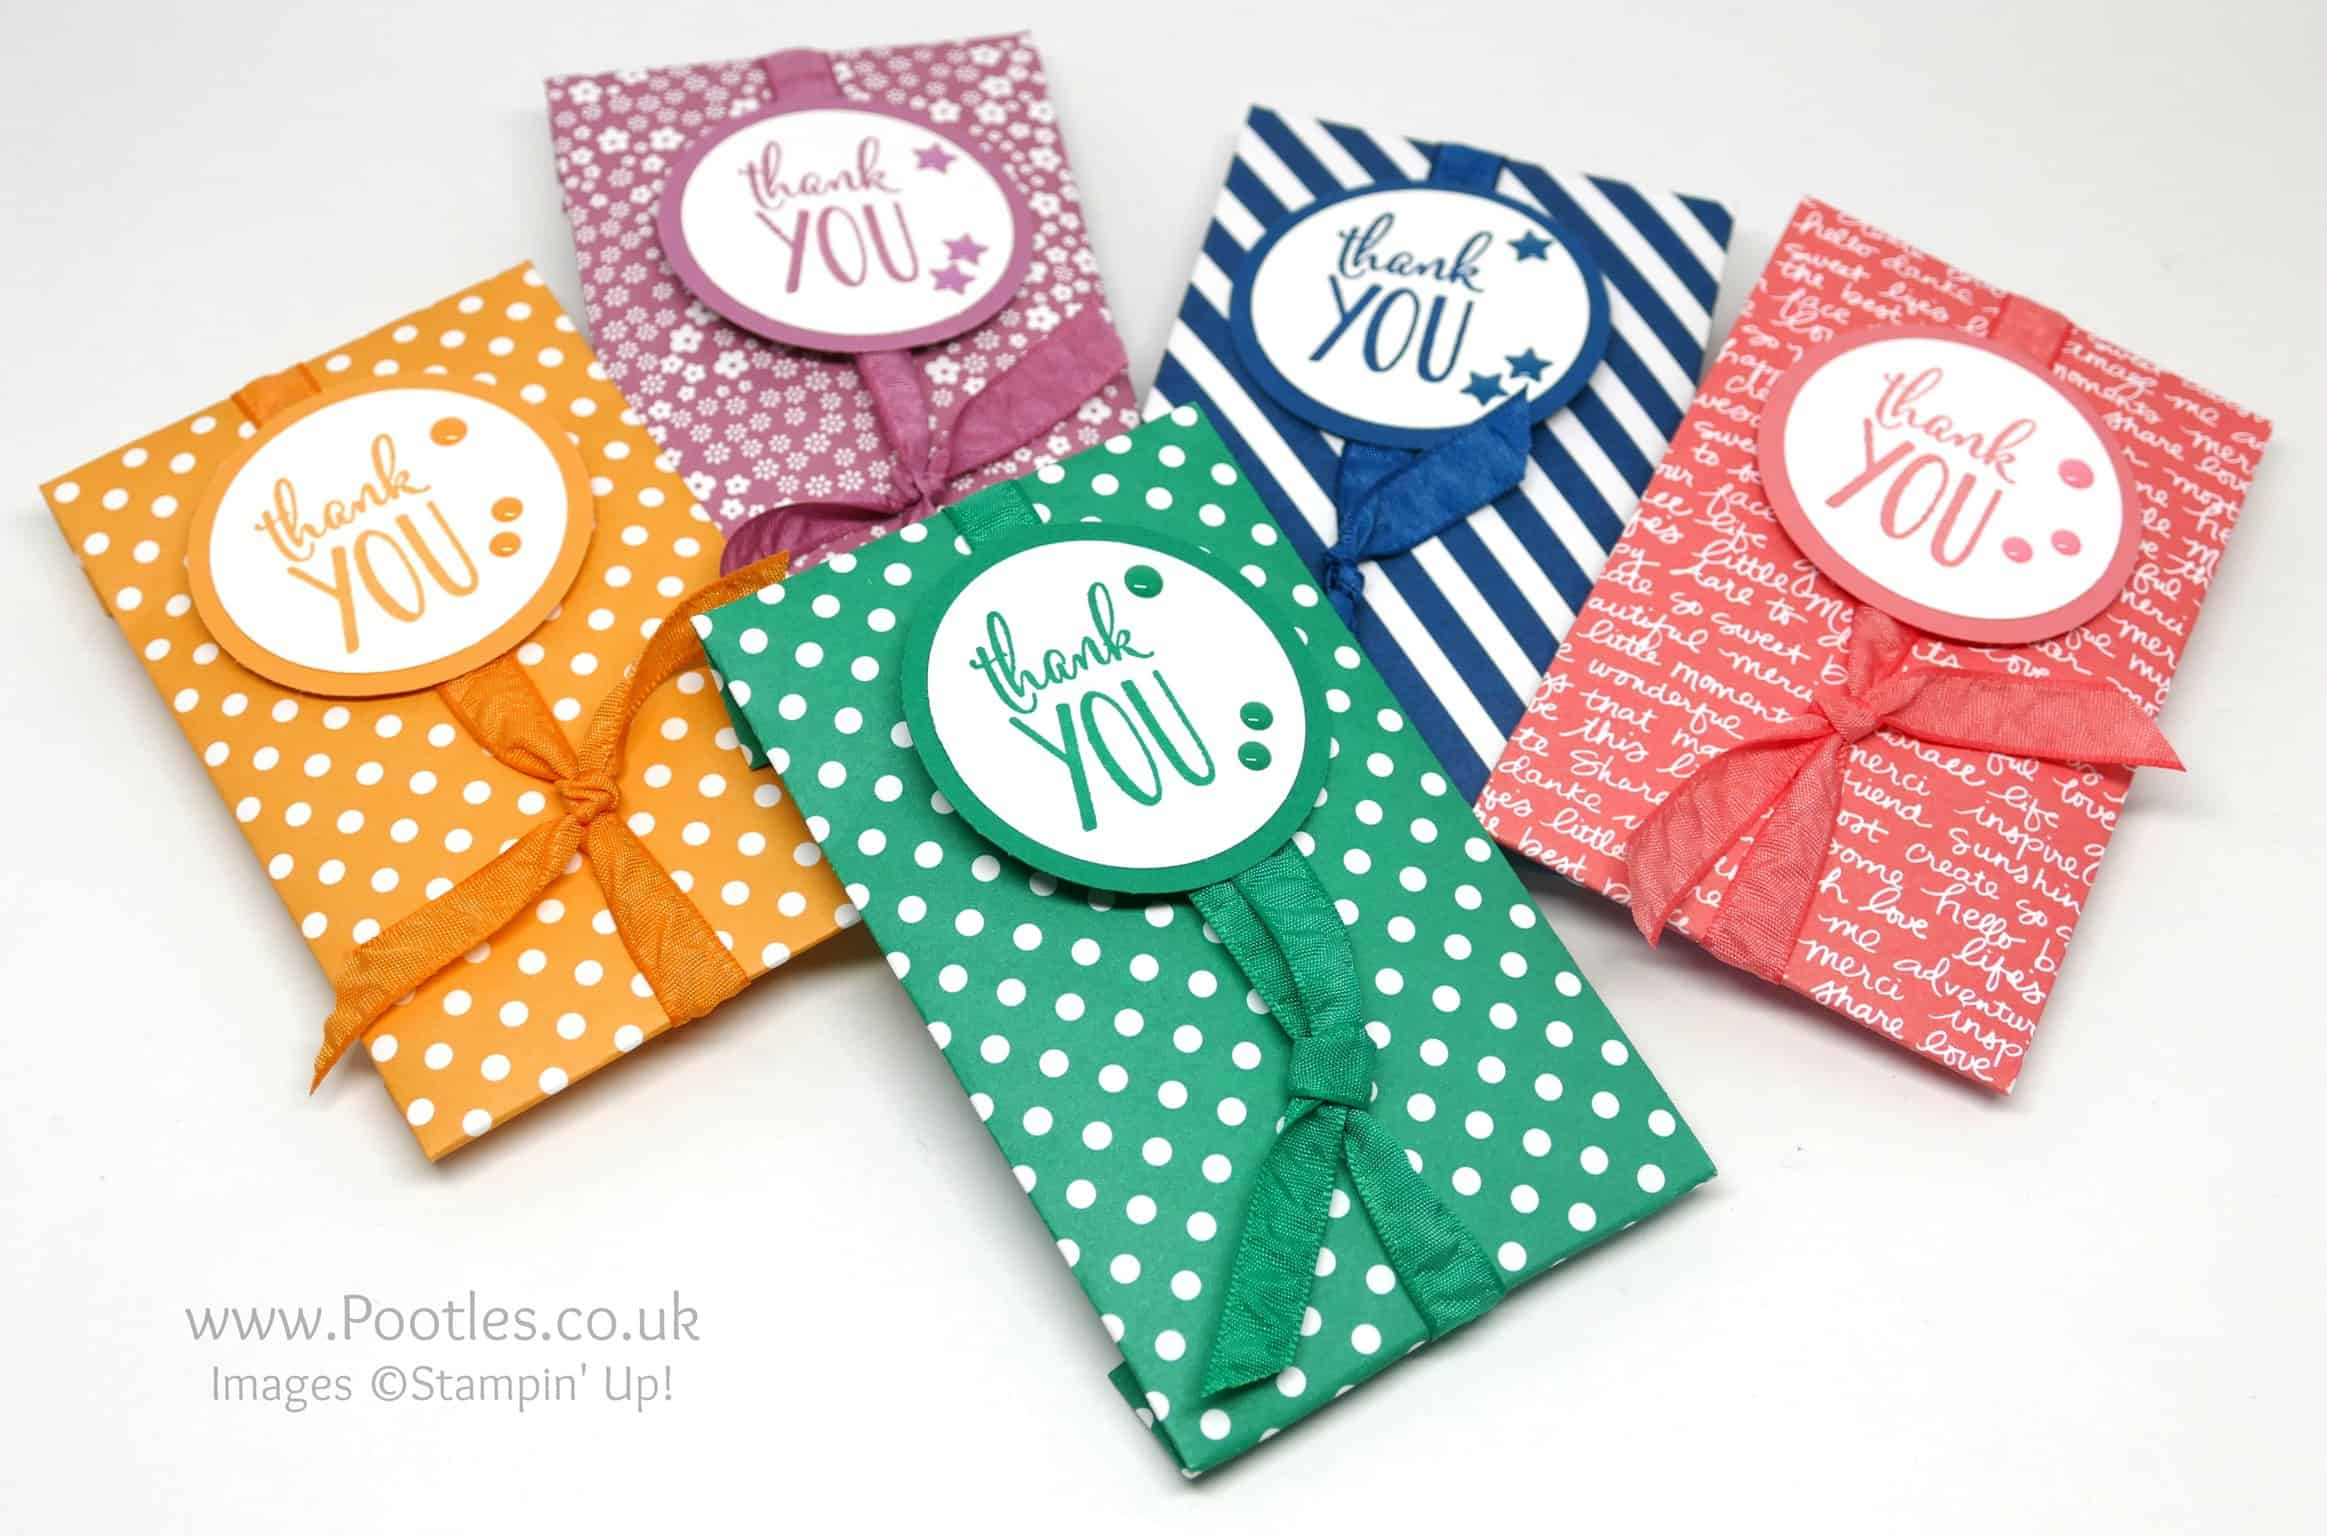 Thank You Coffee Gifts using Stampin' Up! In Colours